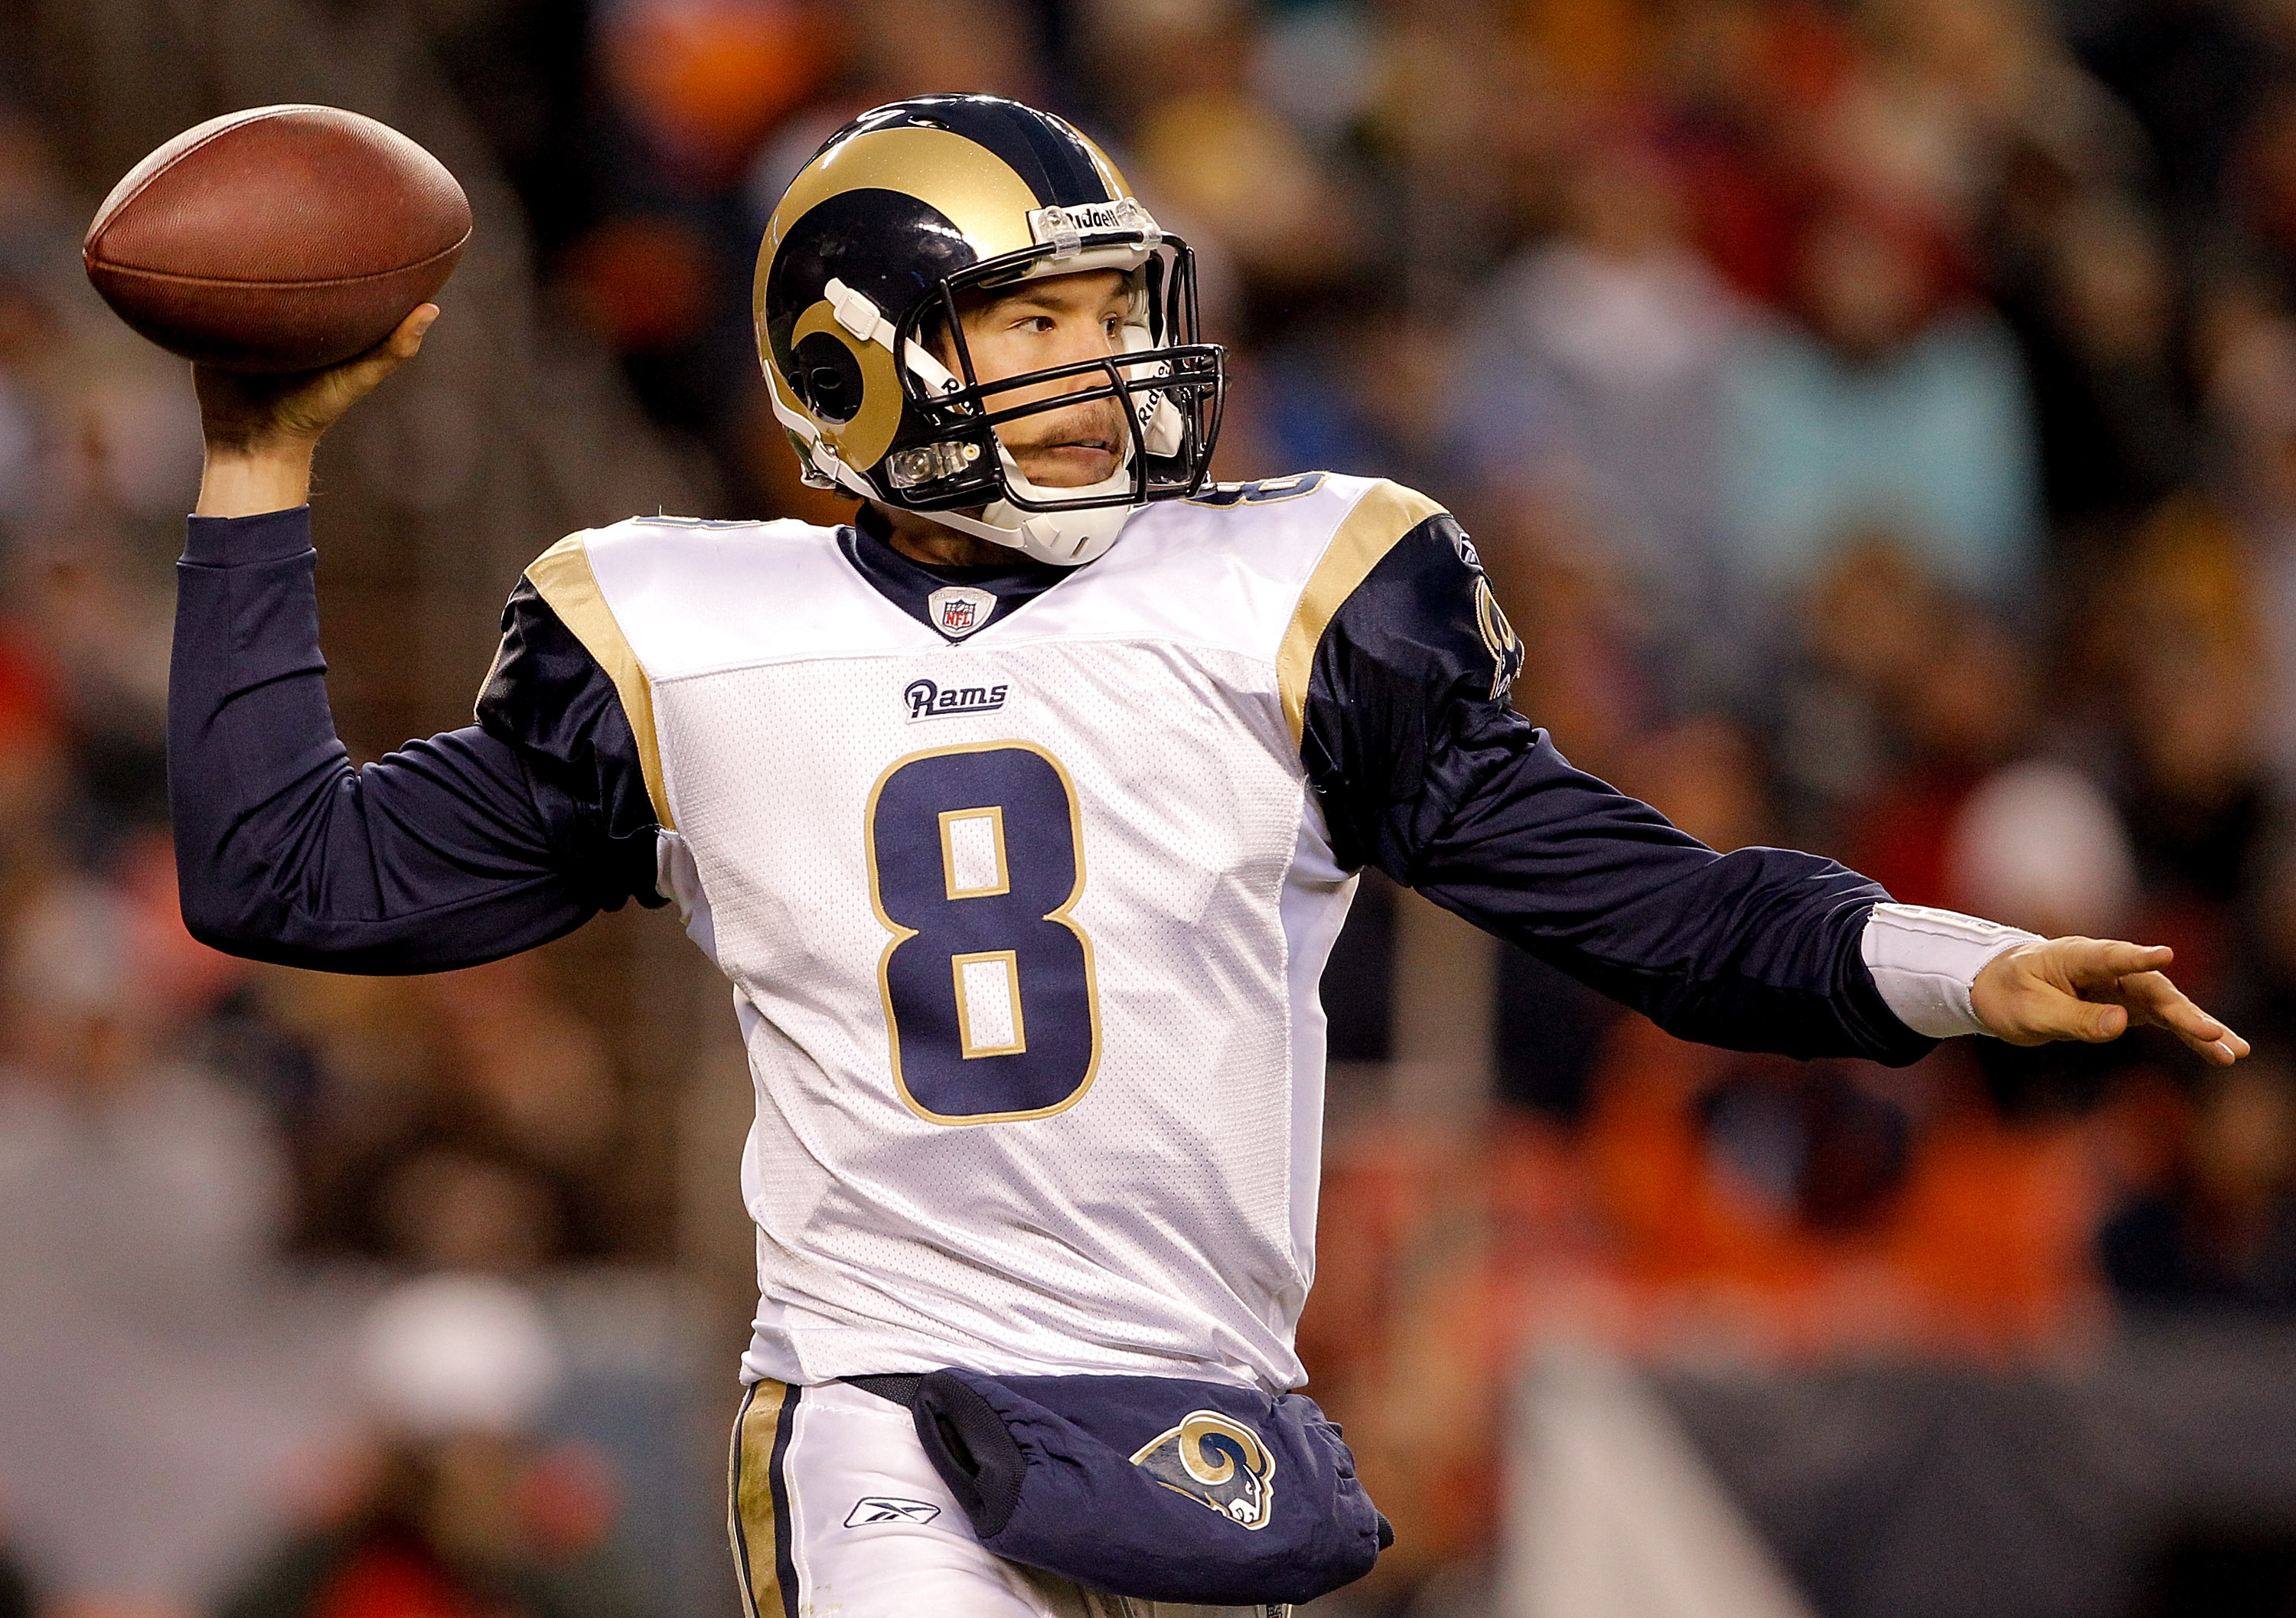 DENVER - NOVEMBER 28:  Quarterback Sam Bradford #8 of the St. Louis Rams makes a pass during the third quarter against the Denver Broncos at INVESCO Field at Mile High on November 28, 2010 in Denver, Colorado. The Rams defeated the Broncos 36-33. (Photo b